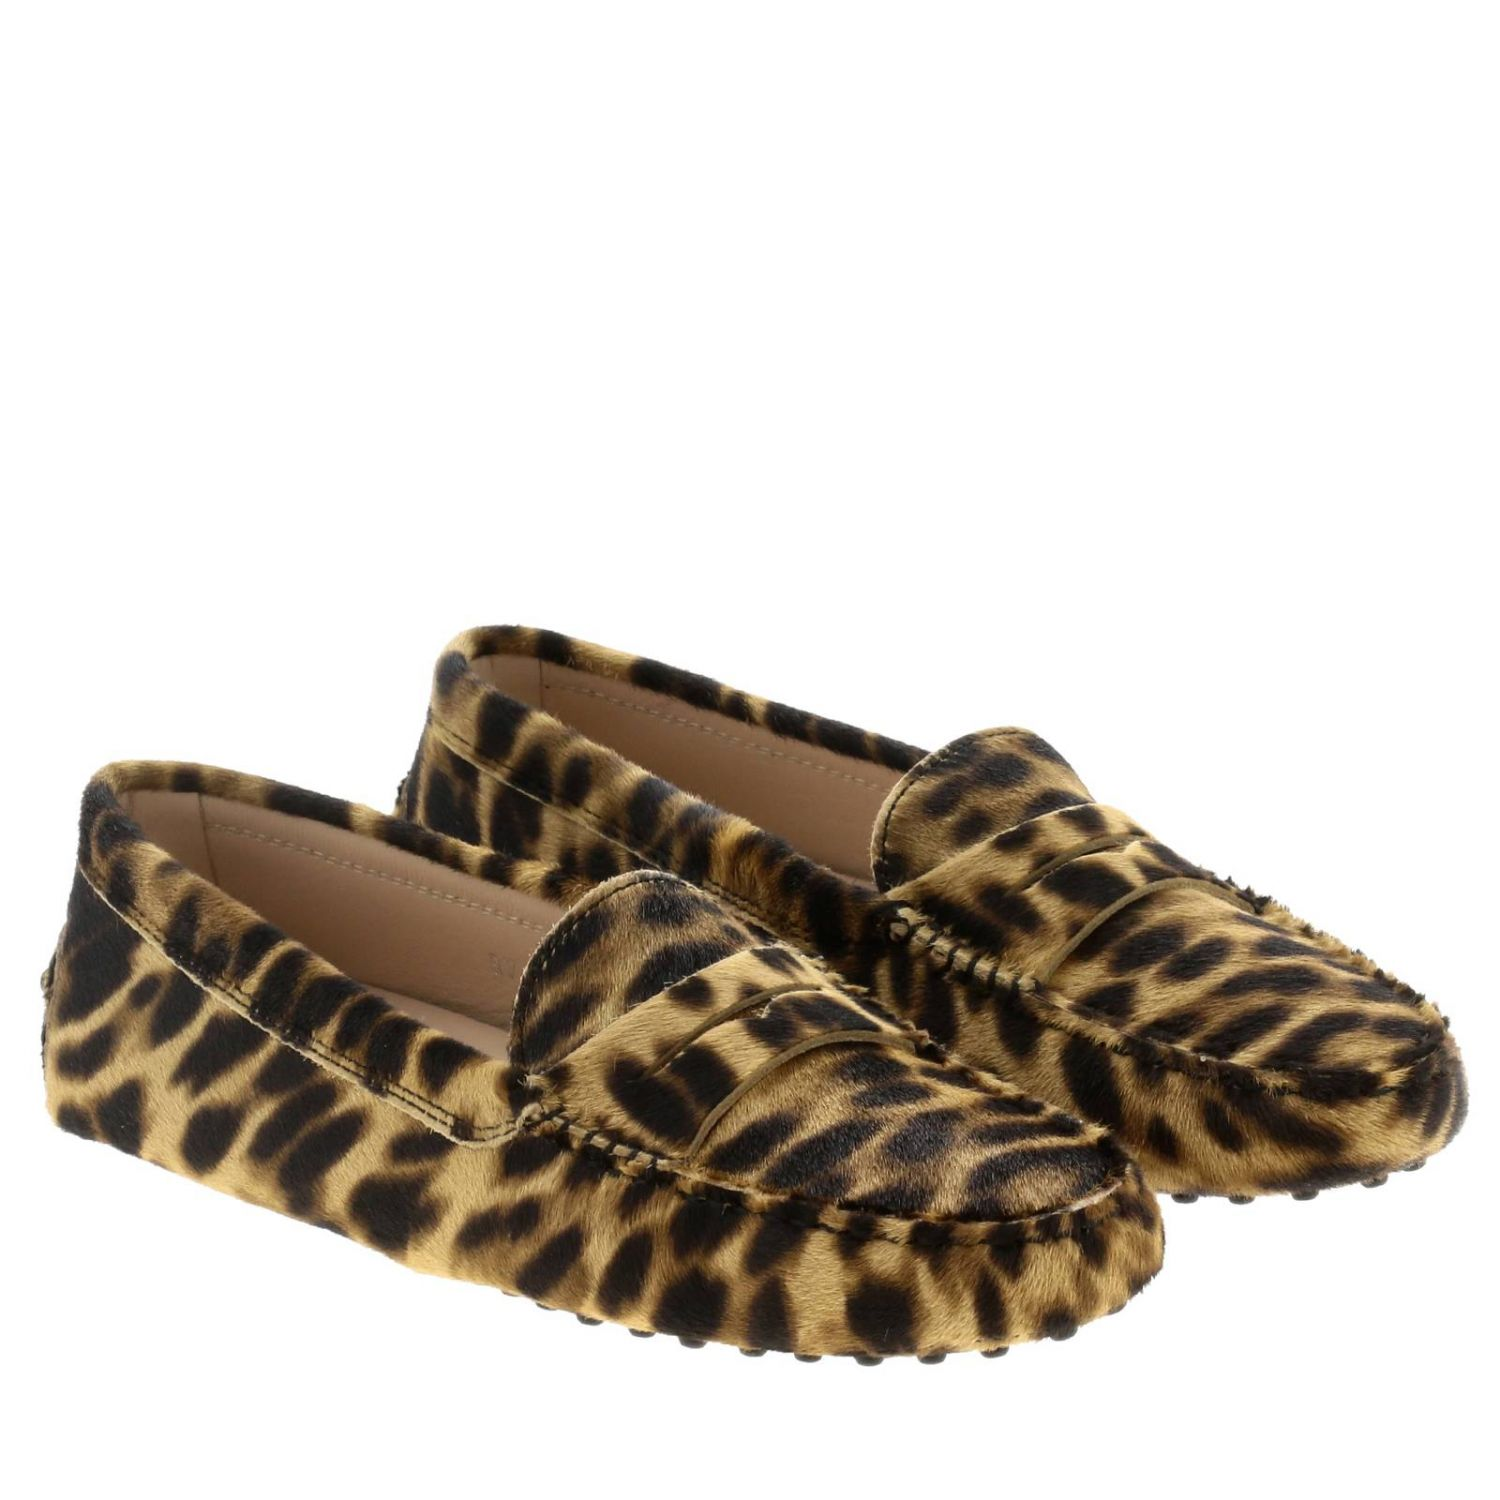 Tod's loafers in calfhair multicolor 2